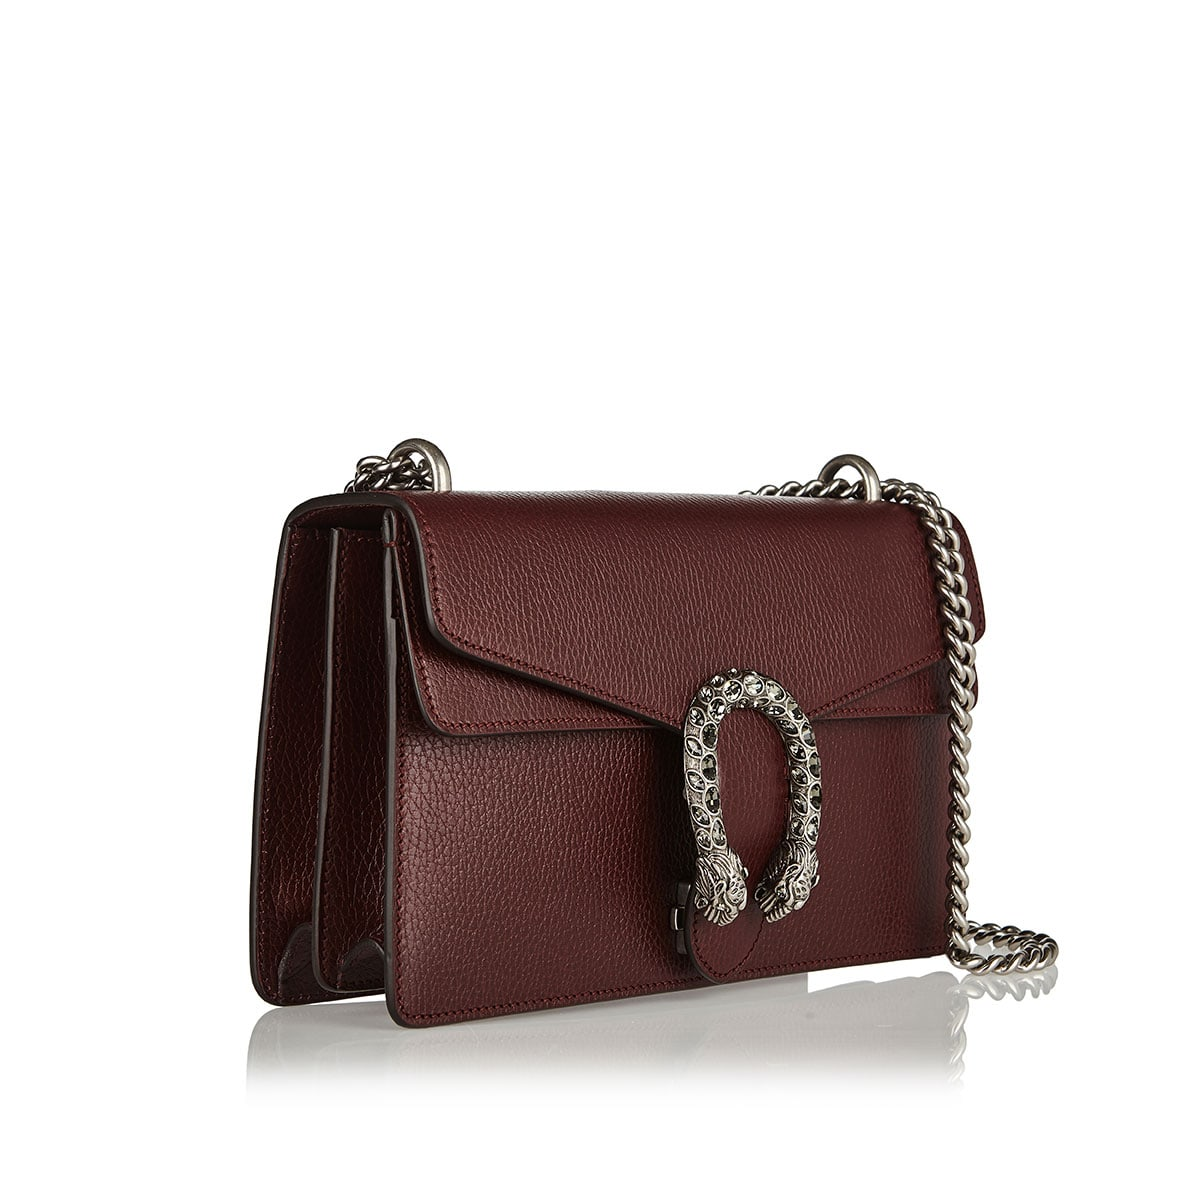 Dionysus Small leather shoulder bag